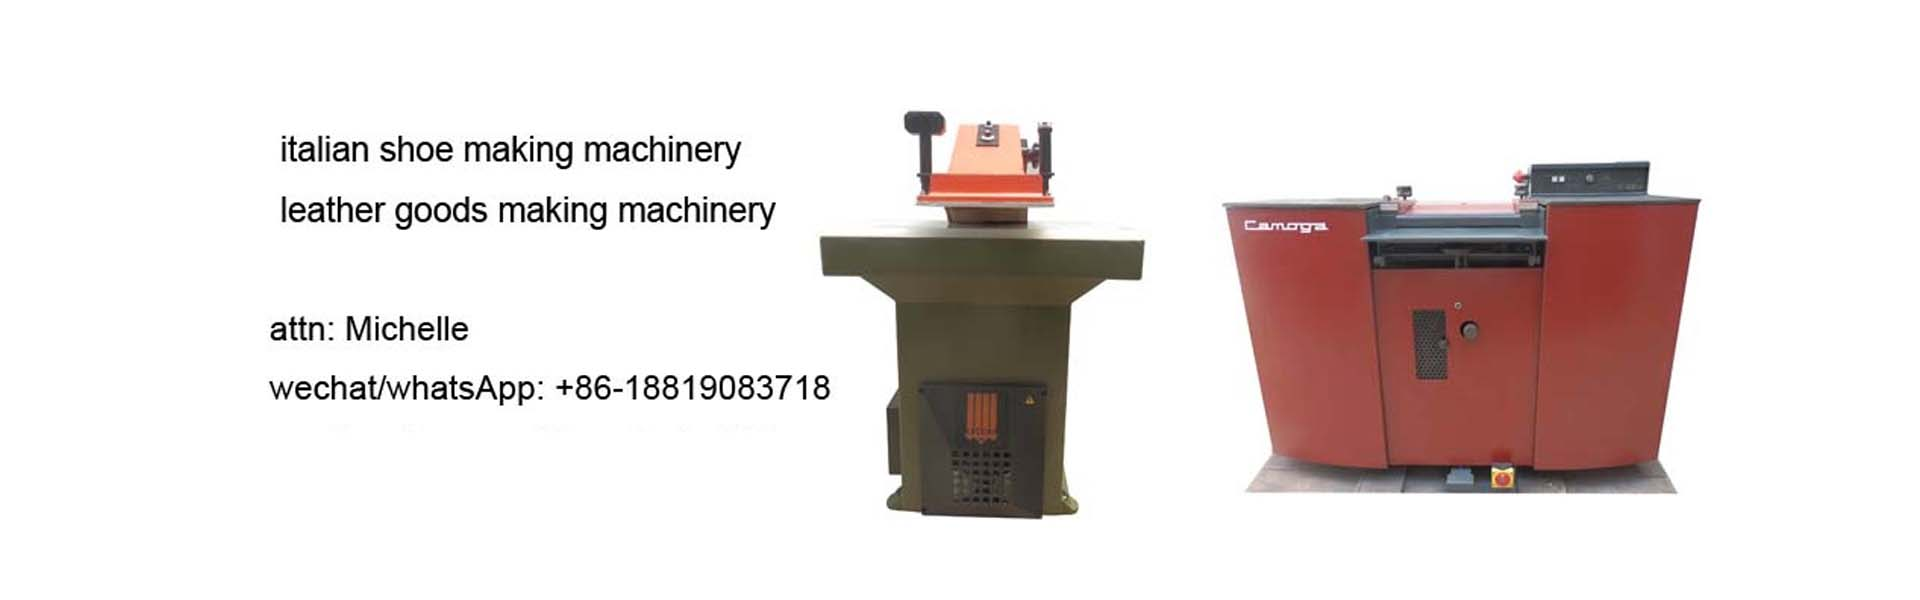 Dongguan Xuchang Machinery Co., Ltd.